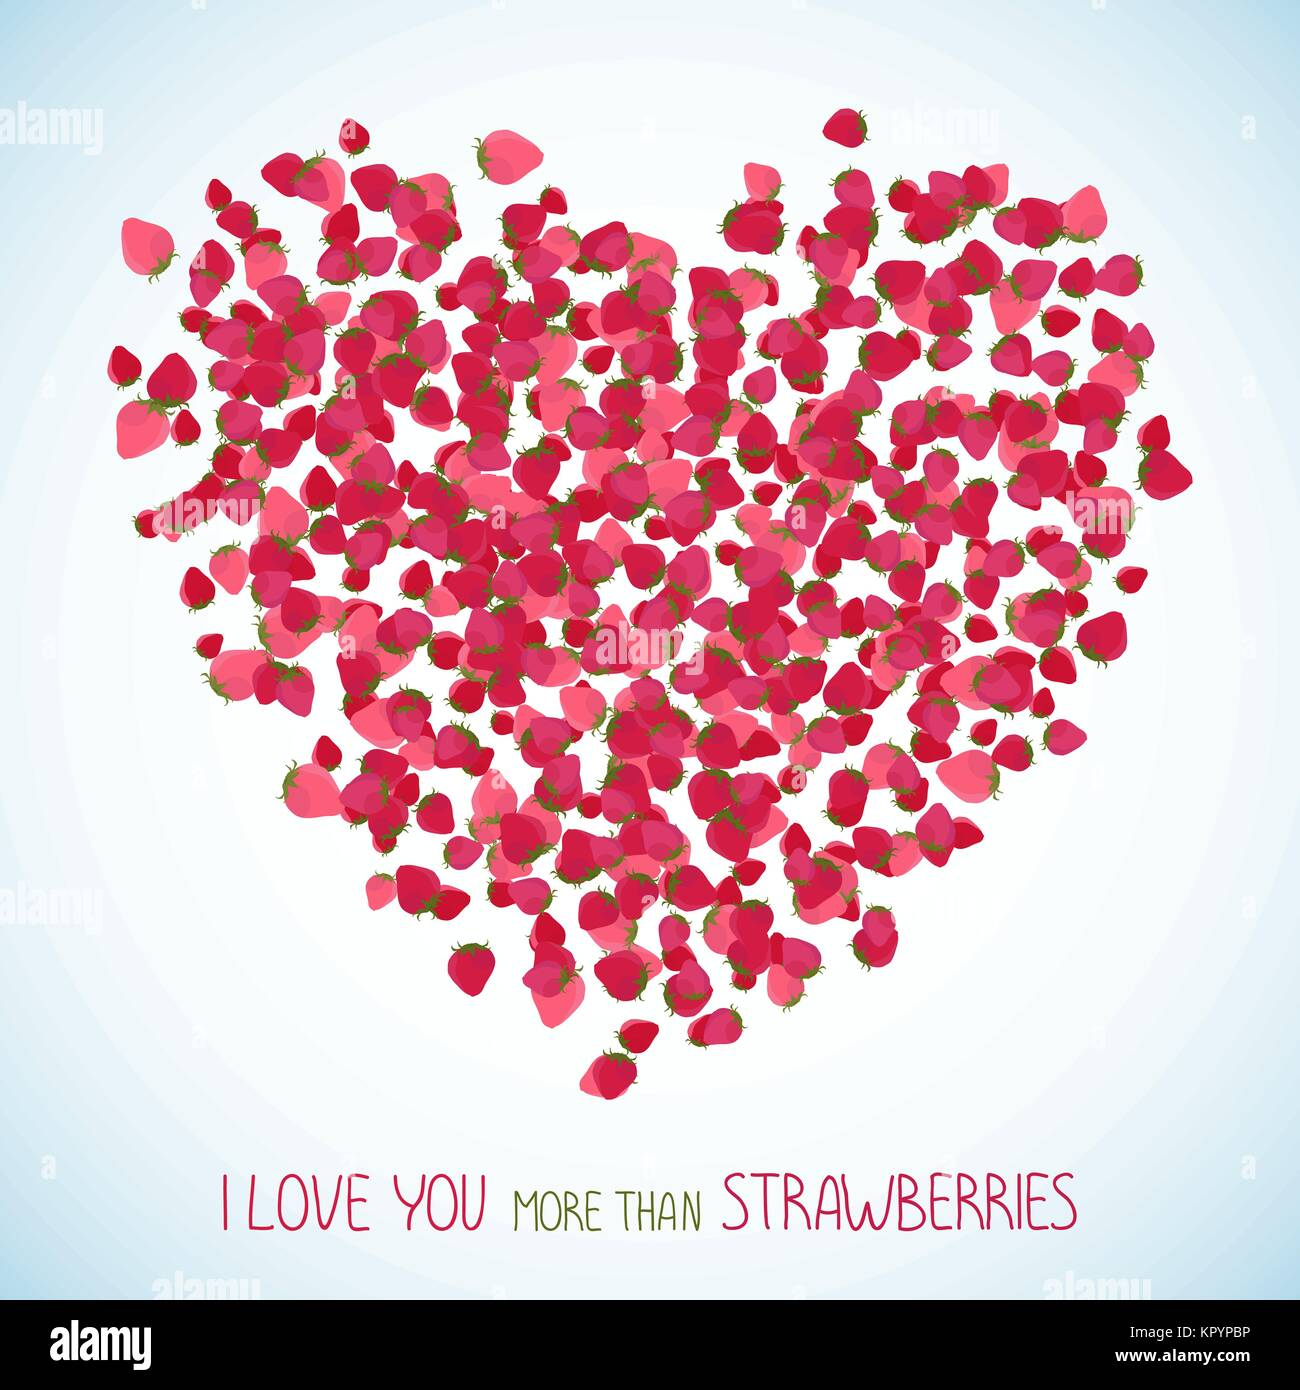 I love you more than strawberries. Heart symbol made of red berries. Sweet Valentines background with copy space. - Stock Vector